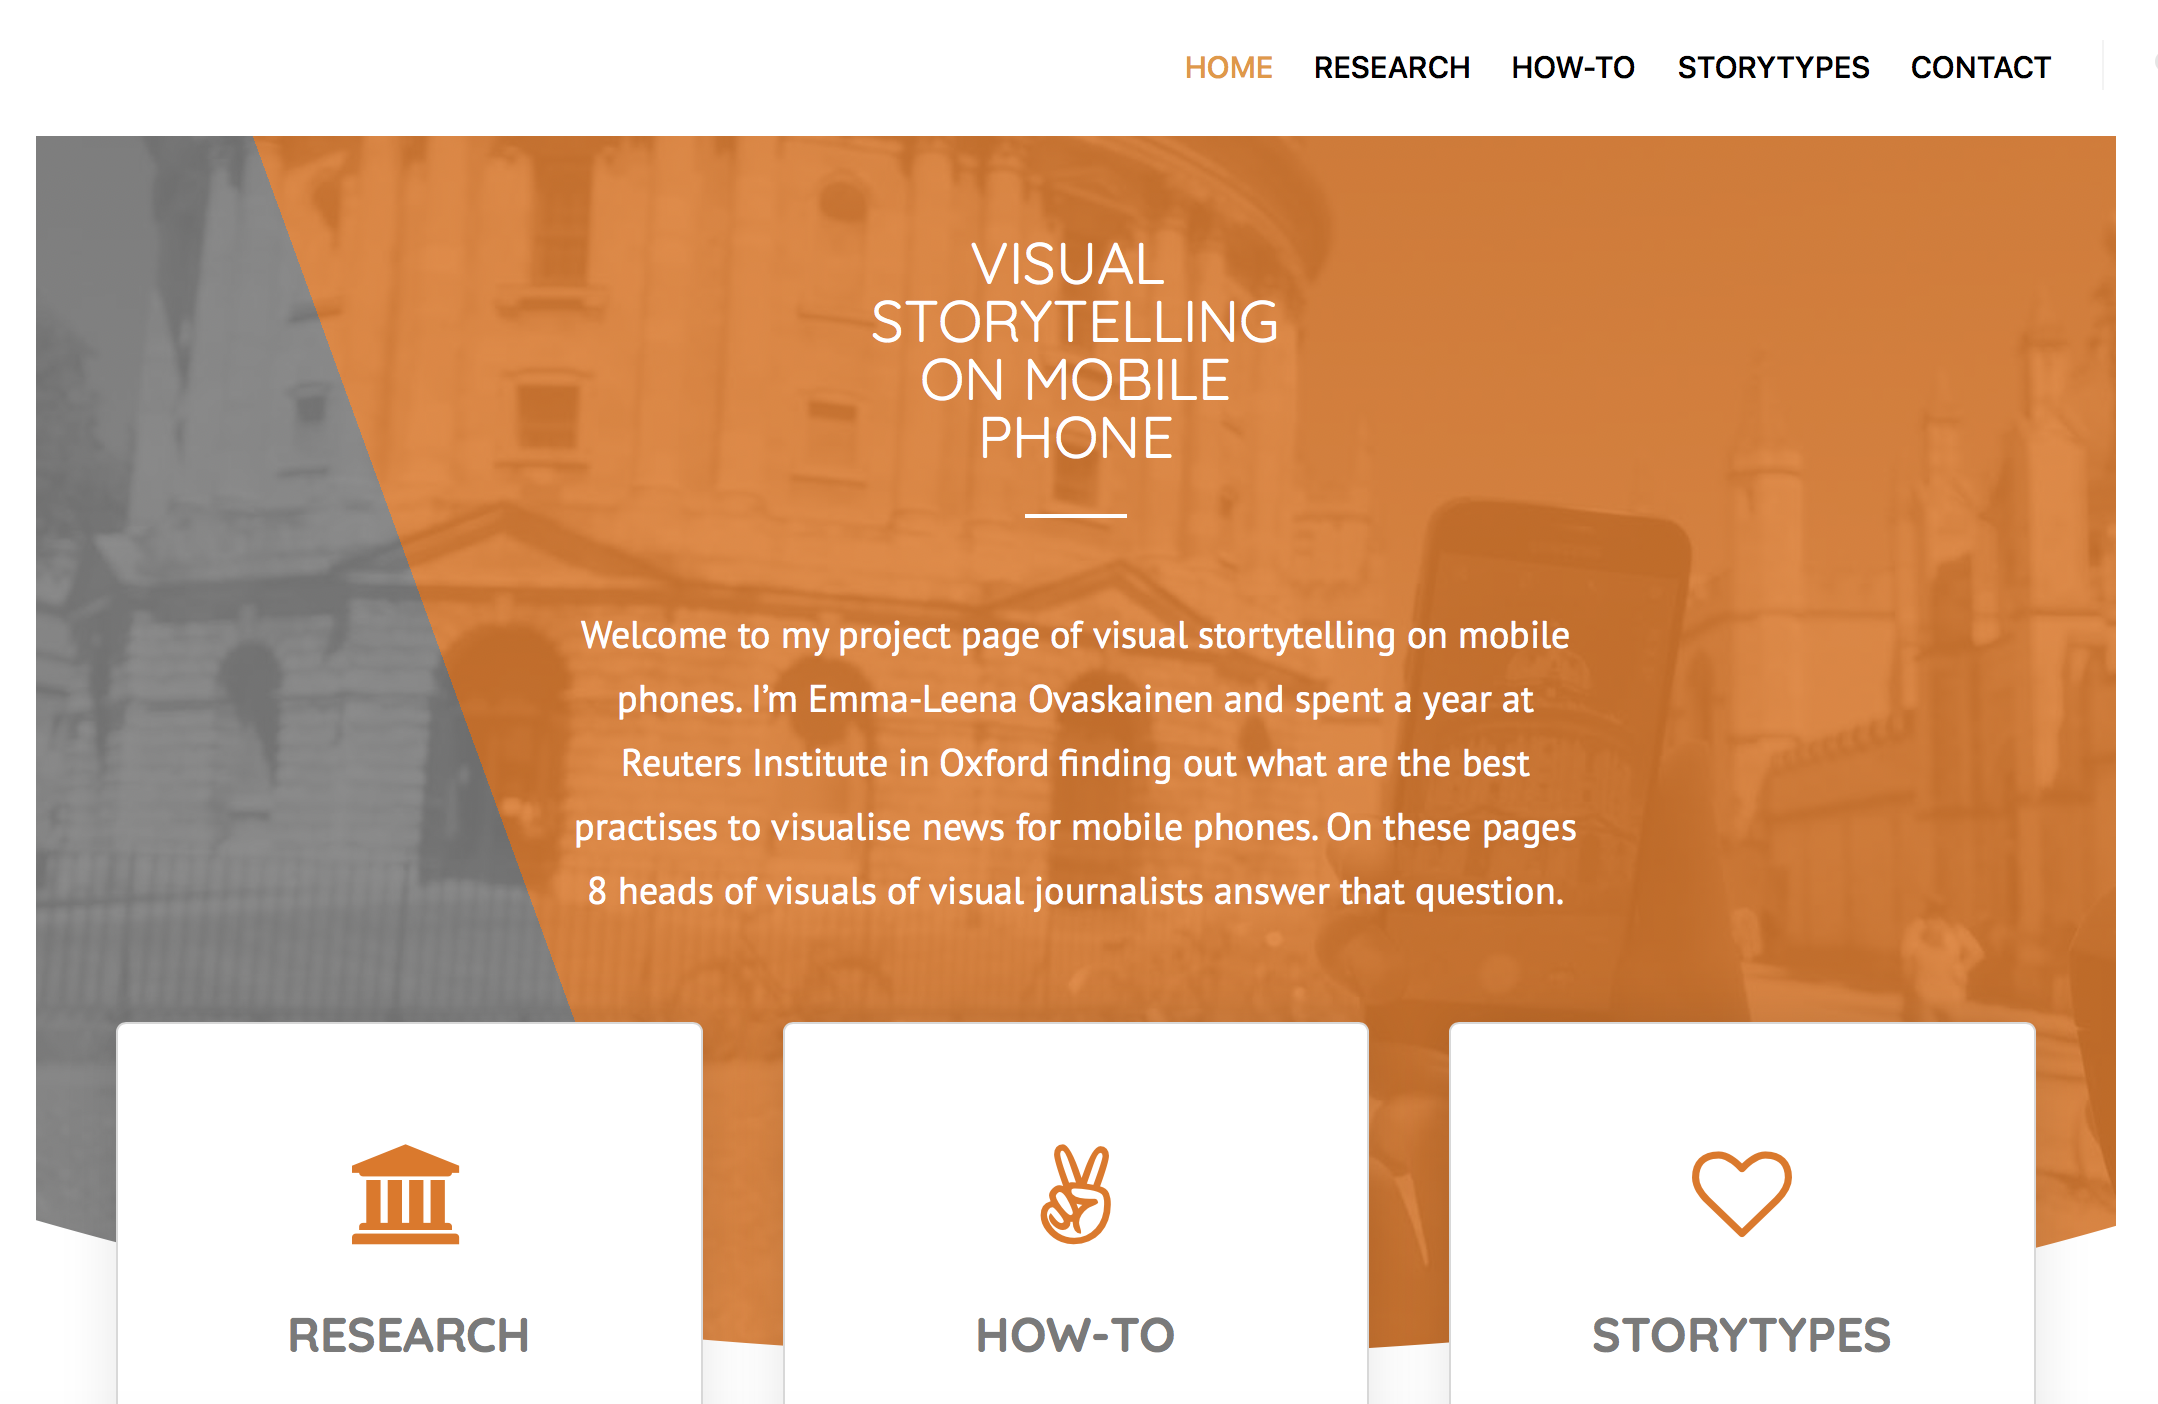 Visual storytelling on mobile phones